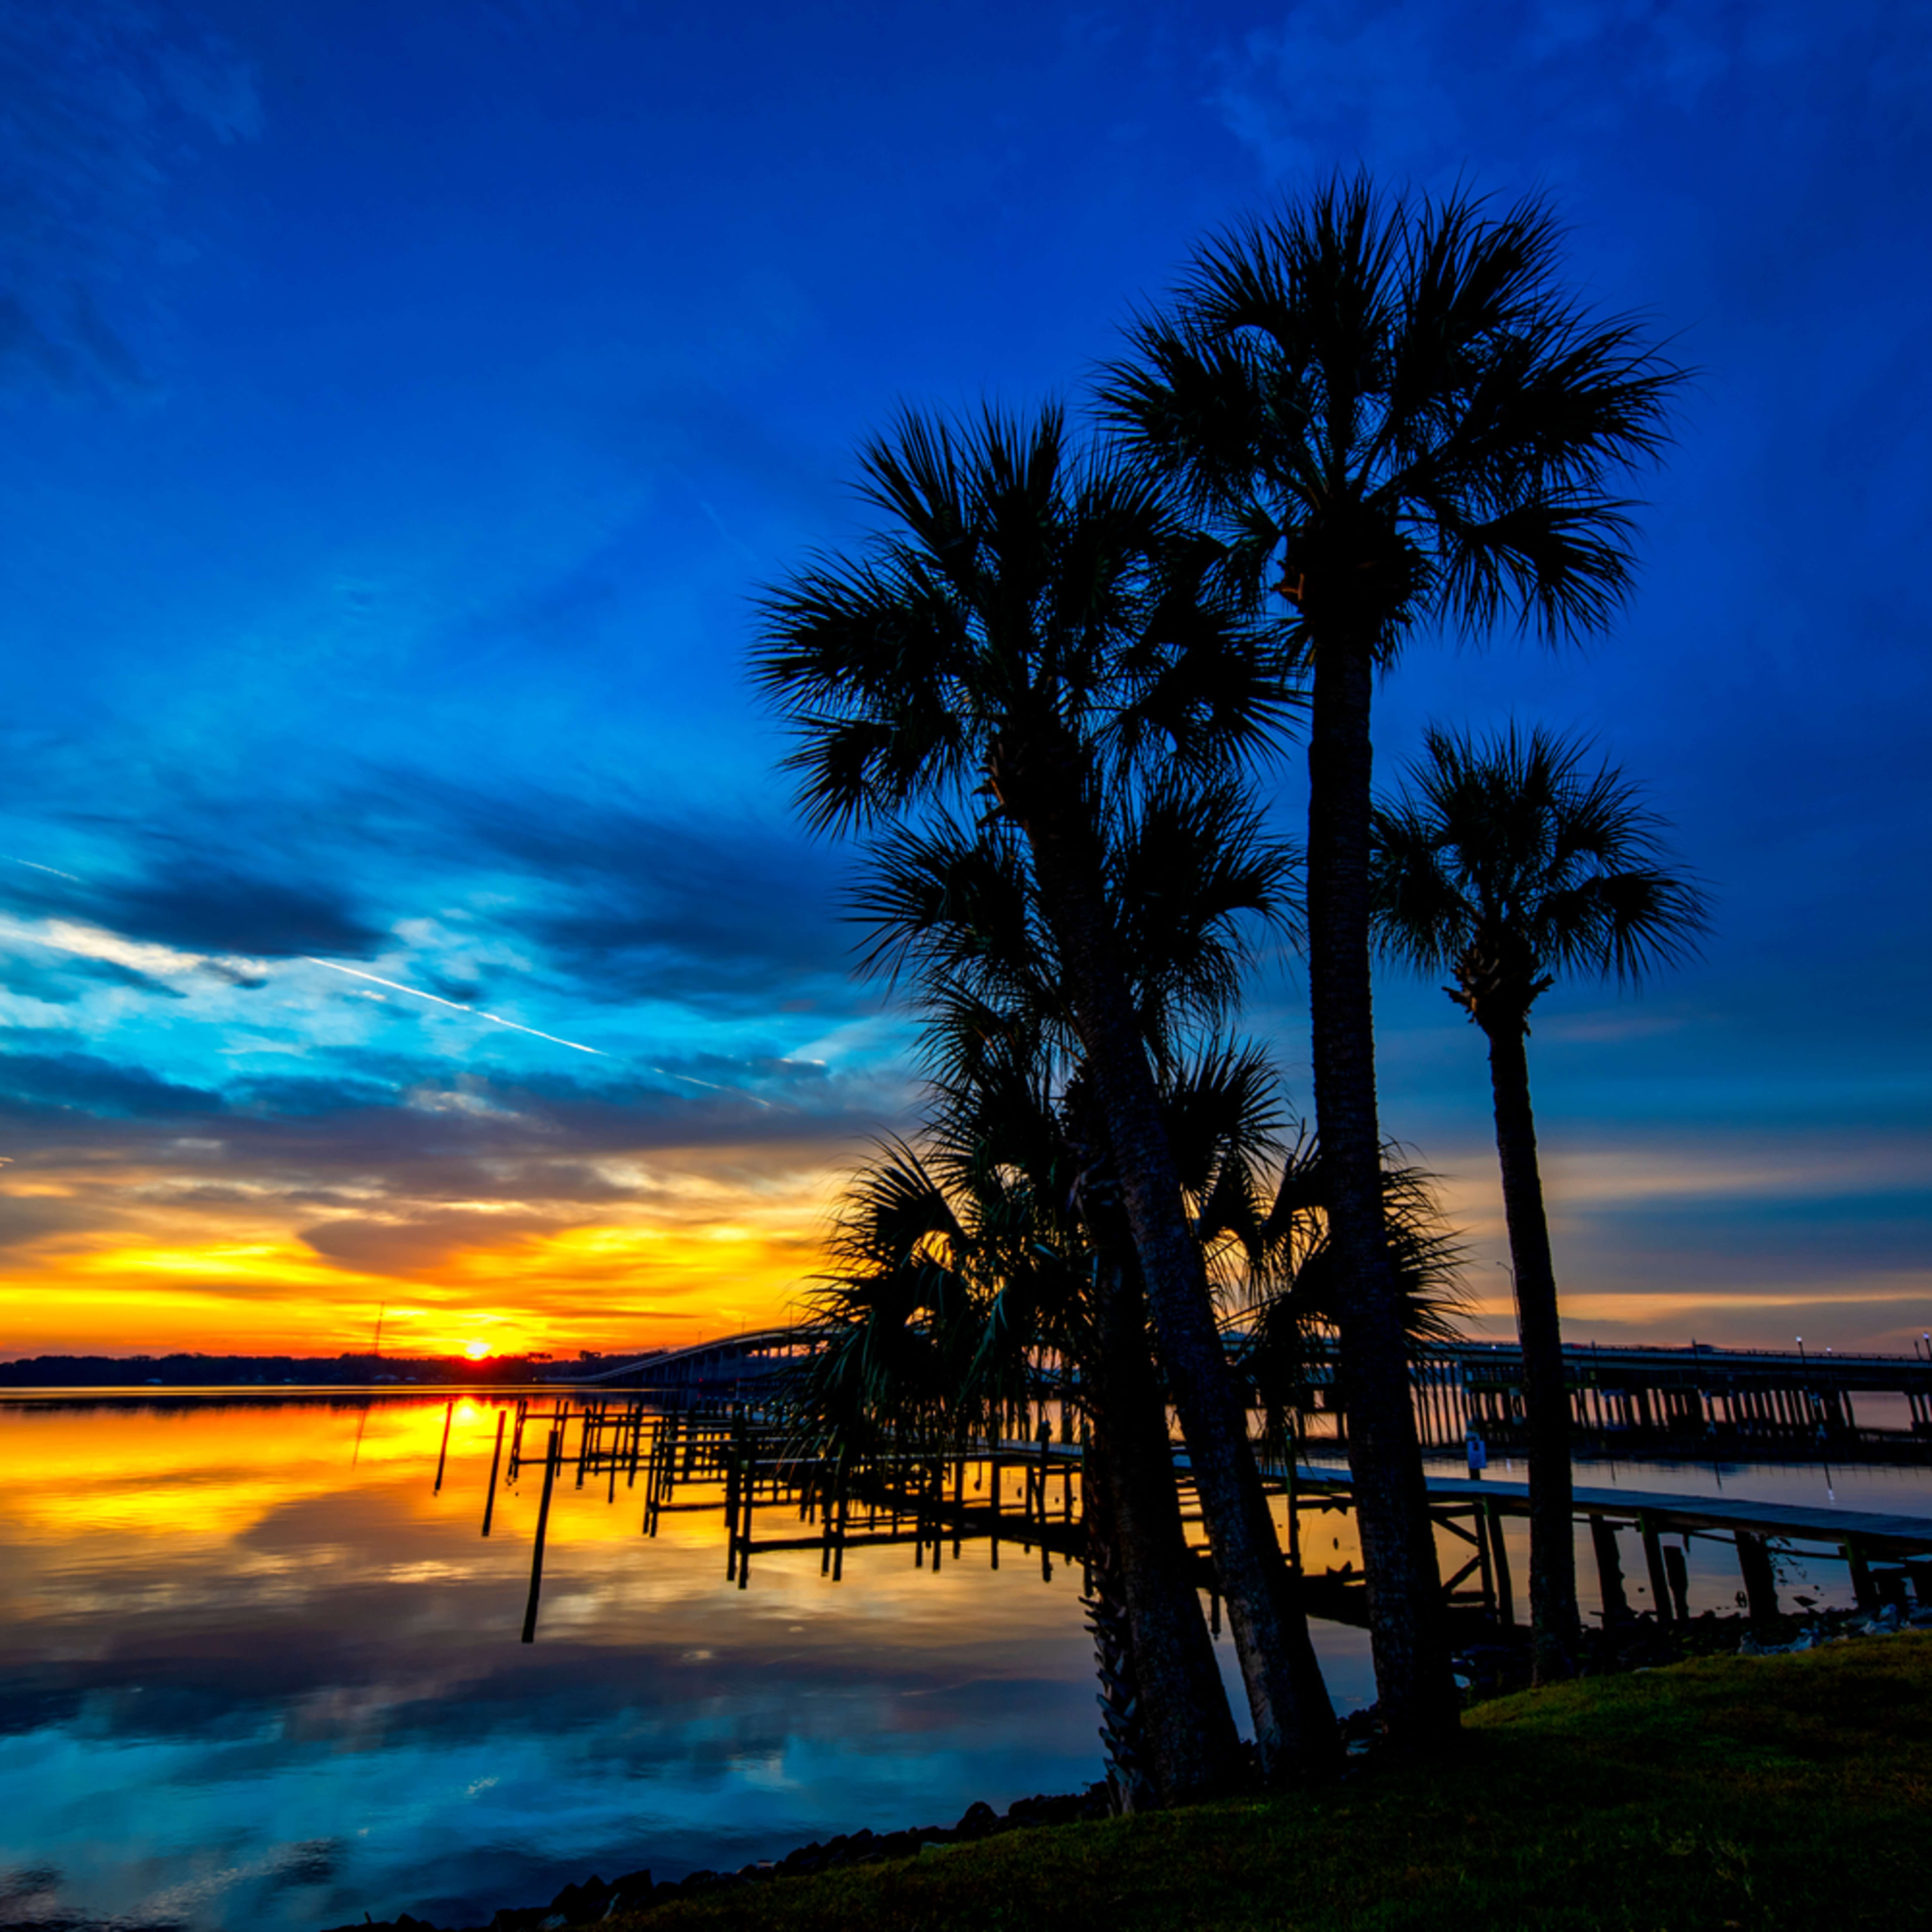 Andy crawford photography st johns river sunrise 1 gvuua7